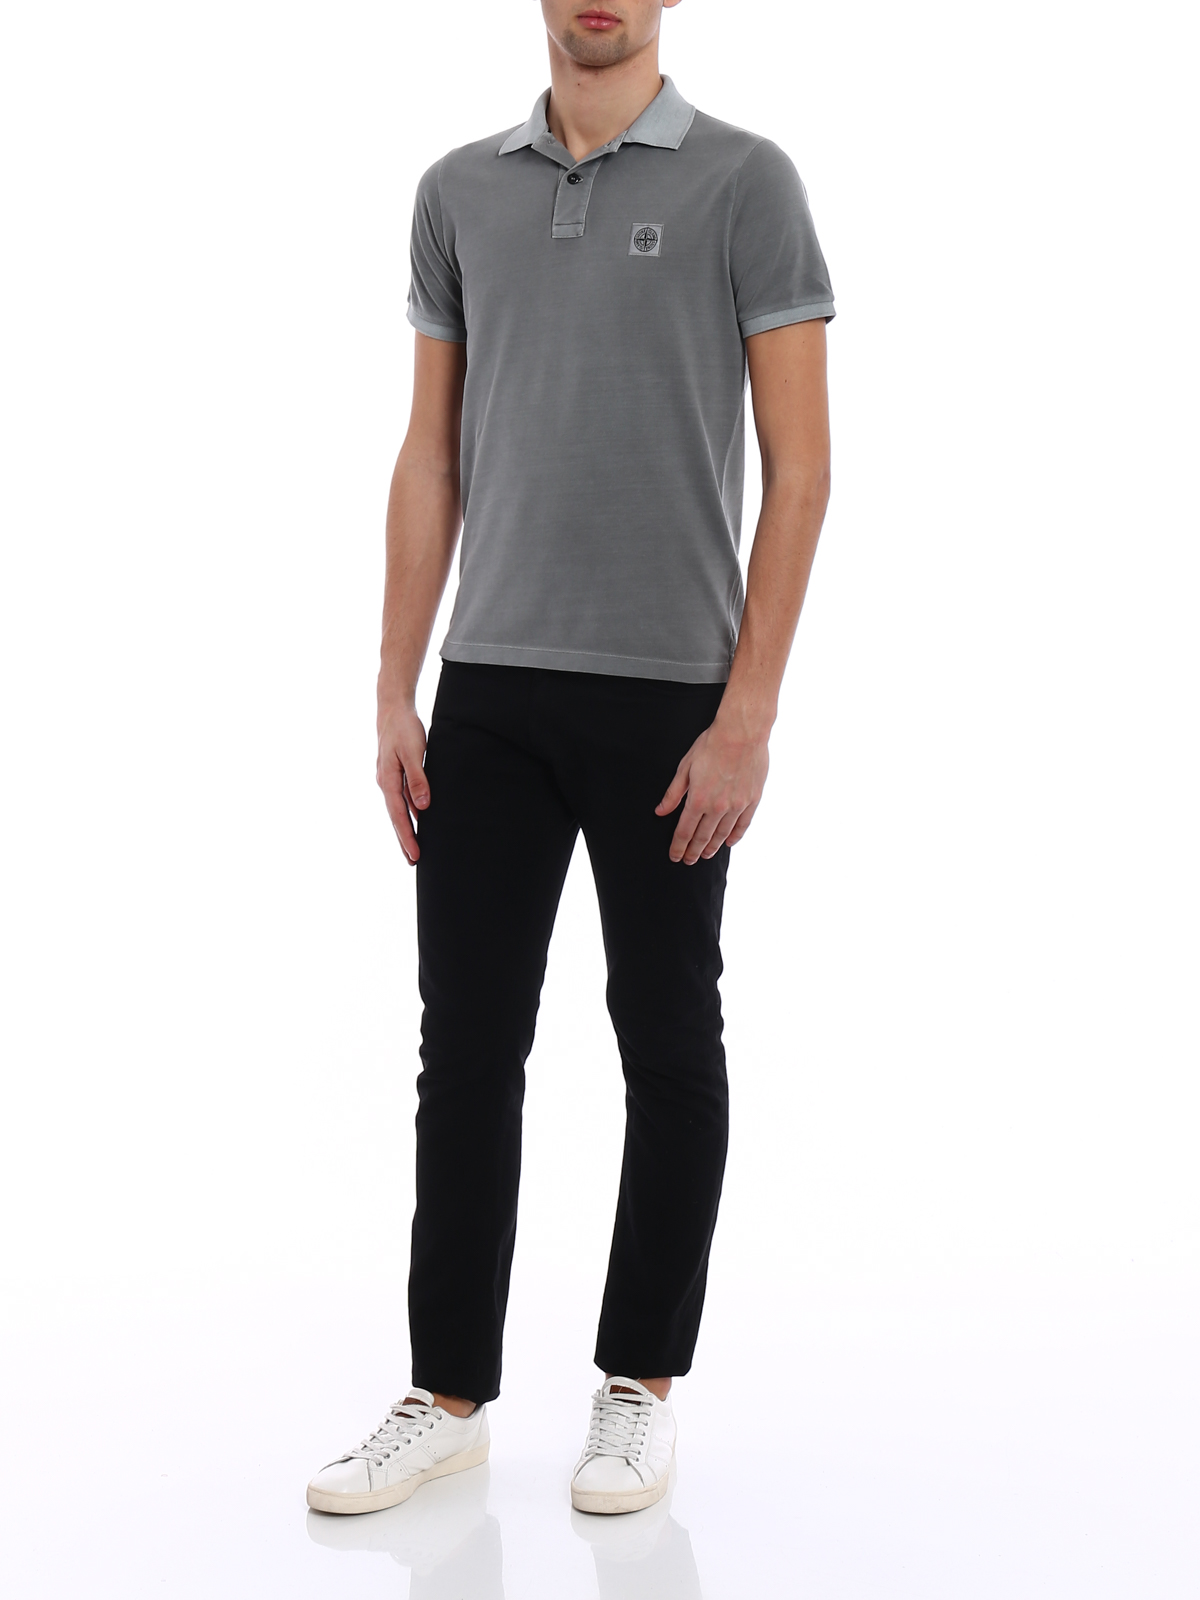 1f0130e91 STONE ISLAND  polo shirts online - Garment dyed grey slim fit polo